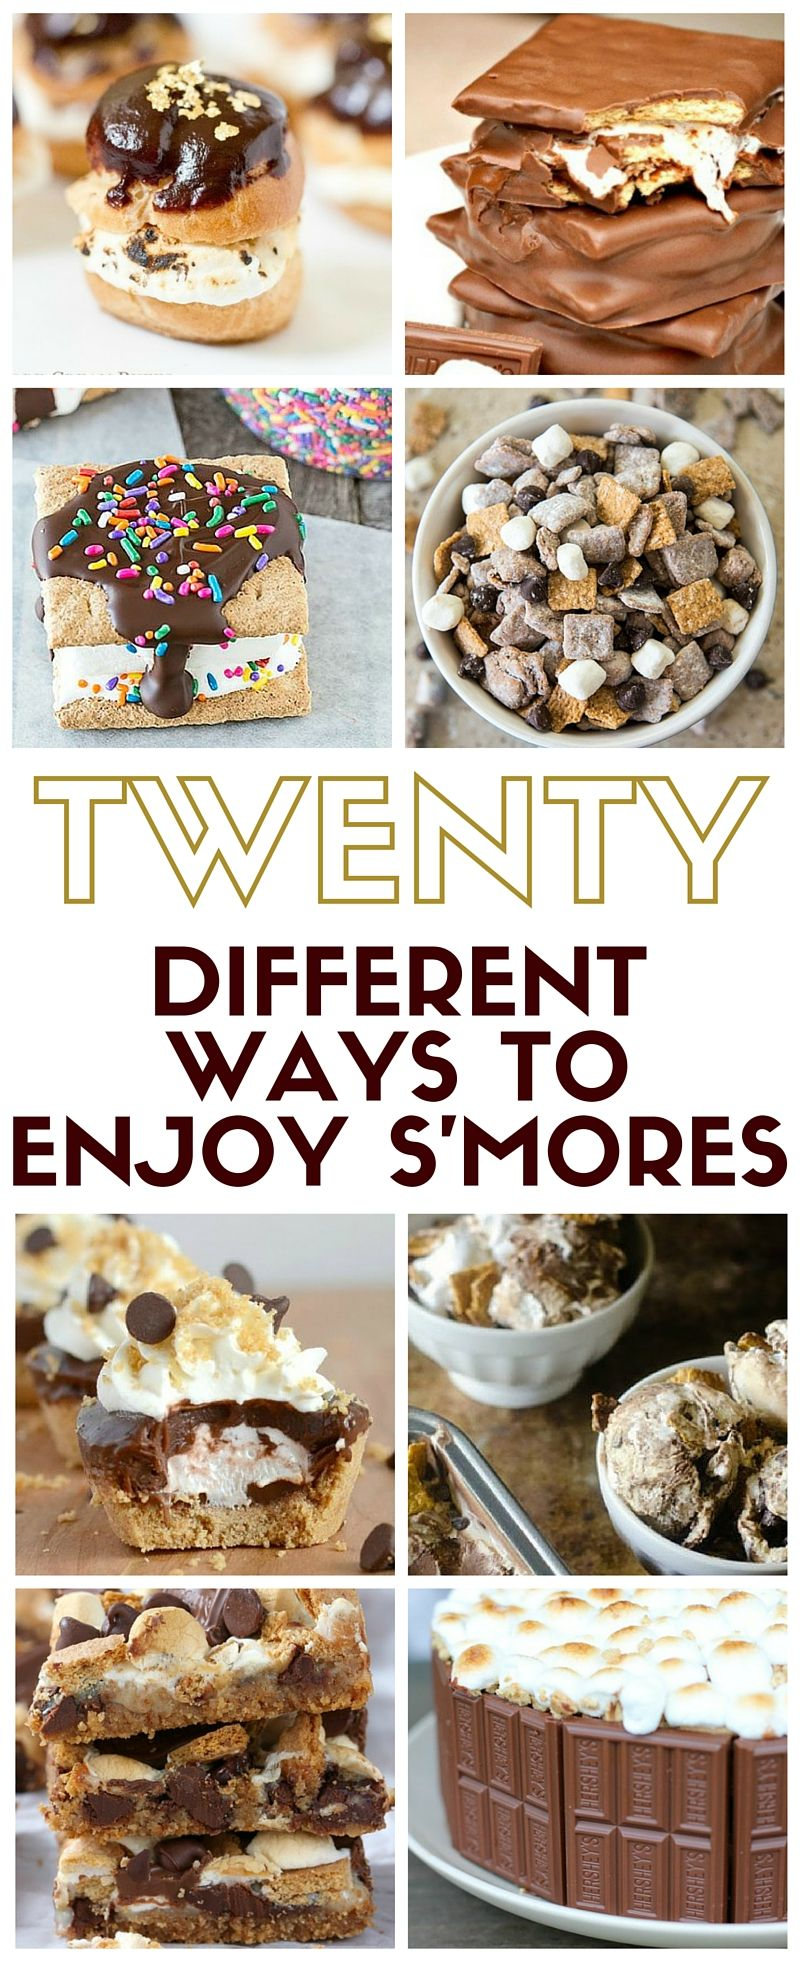 20 Different Ways to Enjoy S'mores S'mores aren't just for camping! Enjoy your favorite fireside treat any day of the year, make cookies, cake and even ice cream S'mores recipes. Yum!